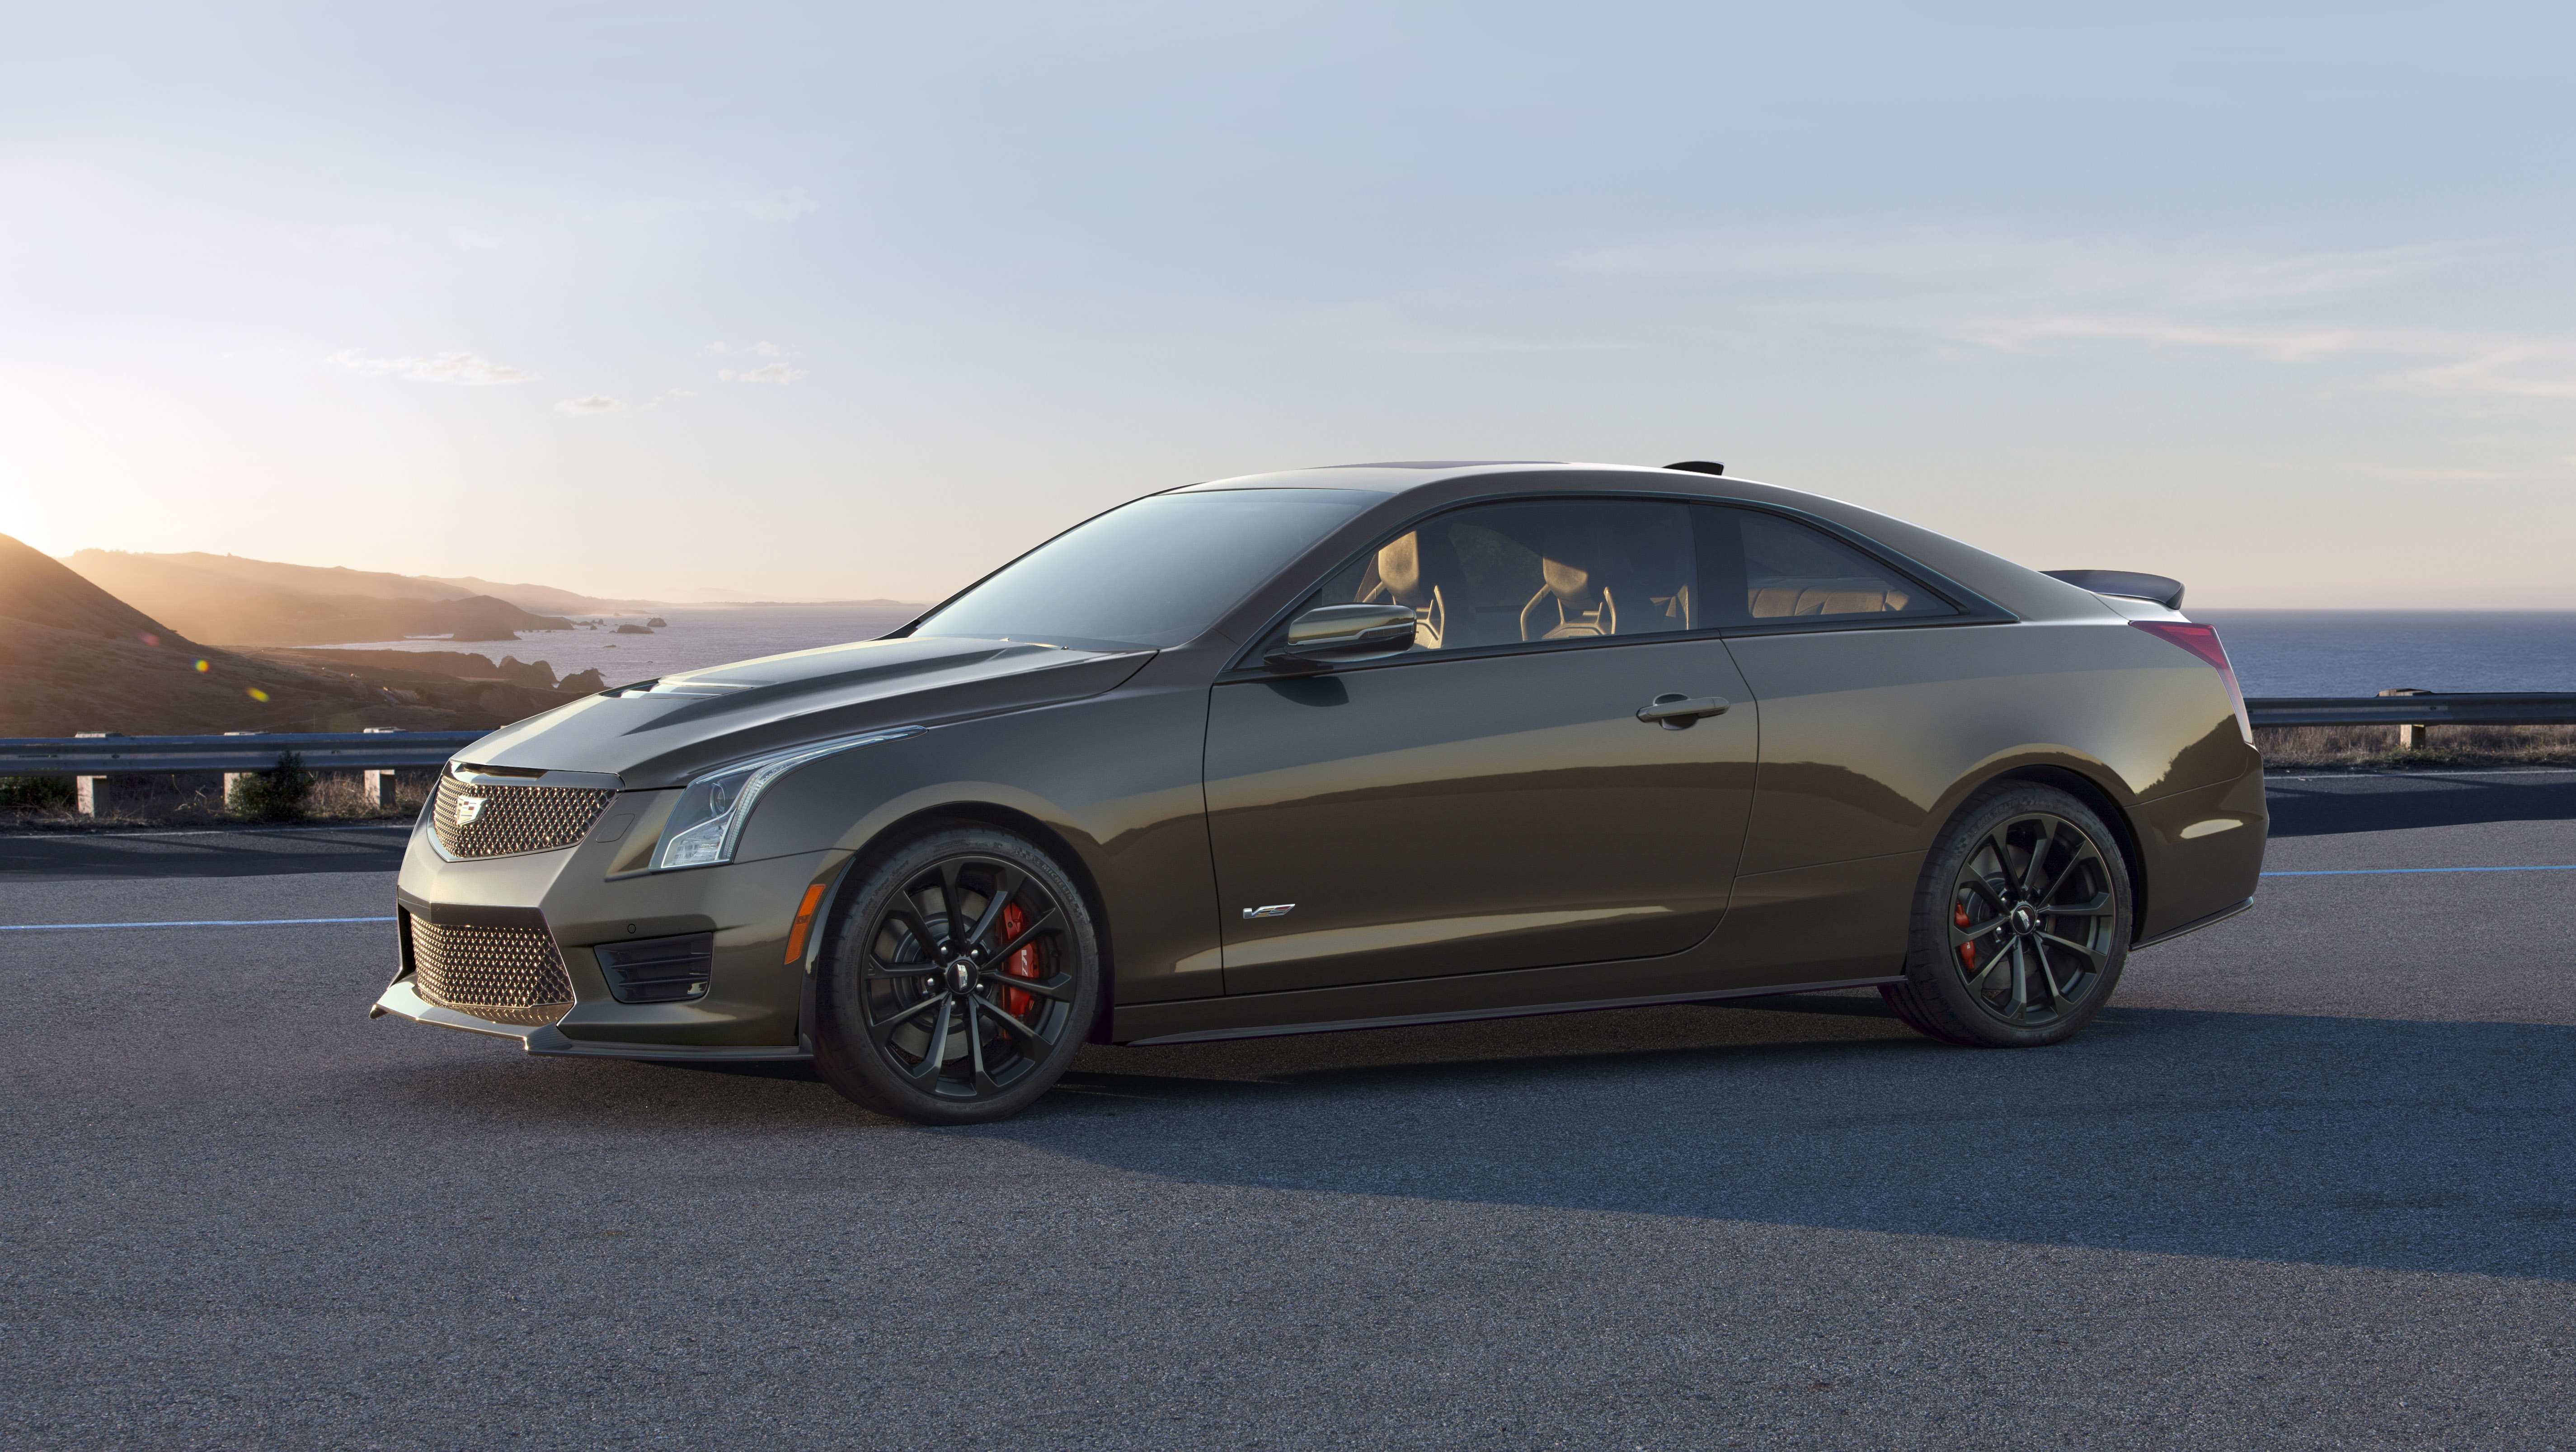 58 New Cadillac 2019 Ats Coupe Redesign Price And Review Research New with Cadillac 2019 Ats Coupe Redesign Price And Review